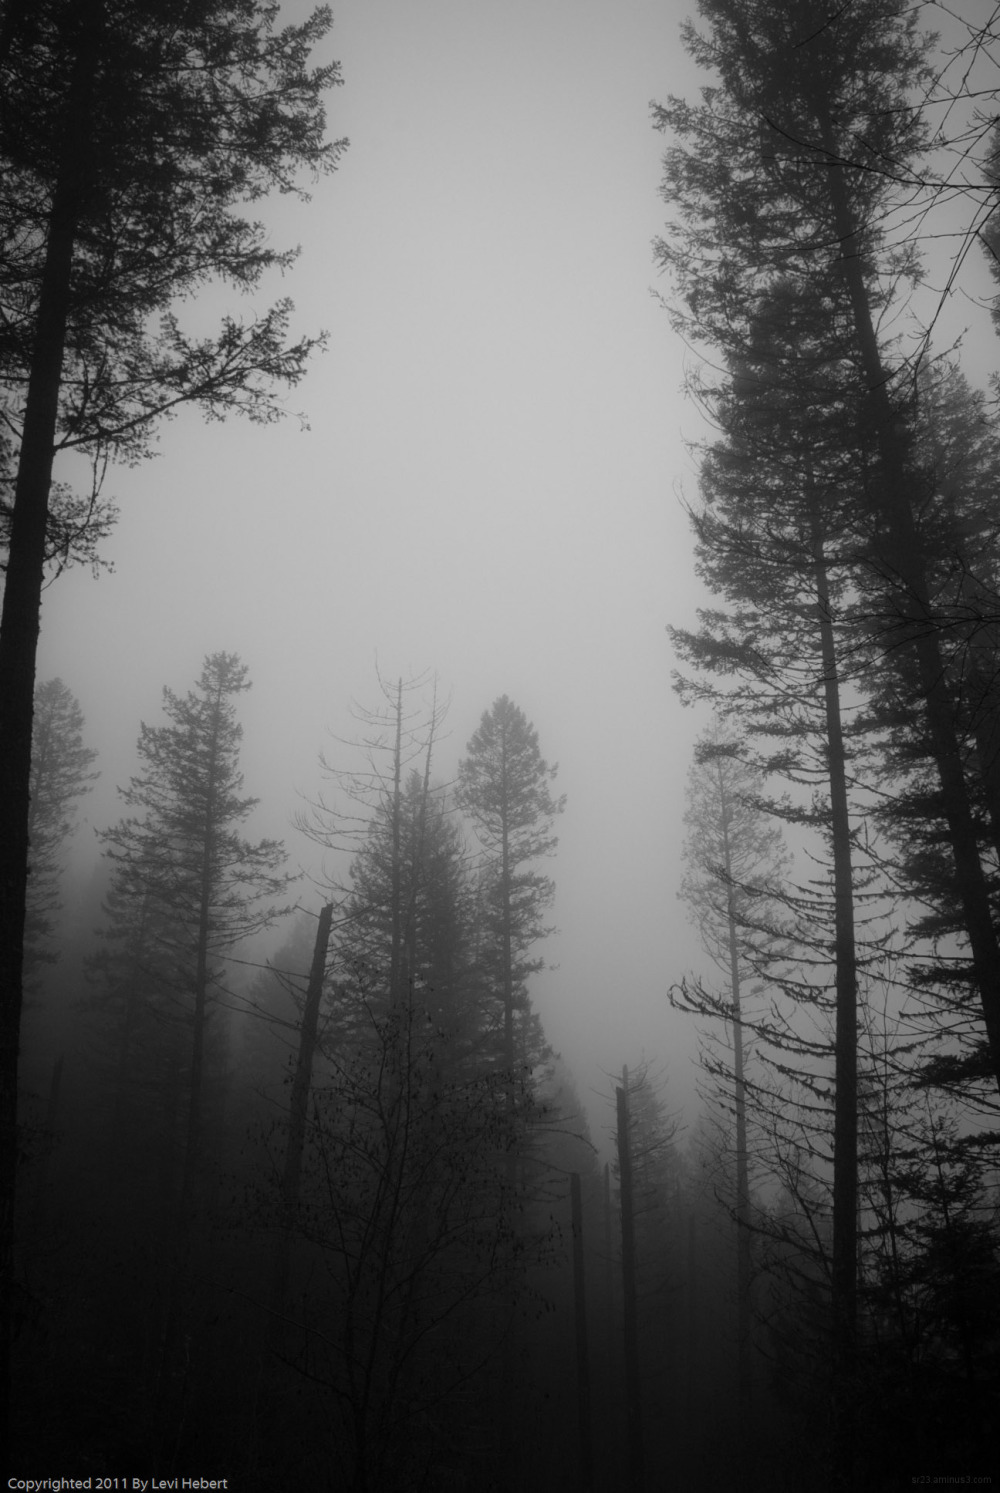 Trees in fog on the side of a mountan